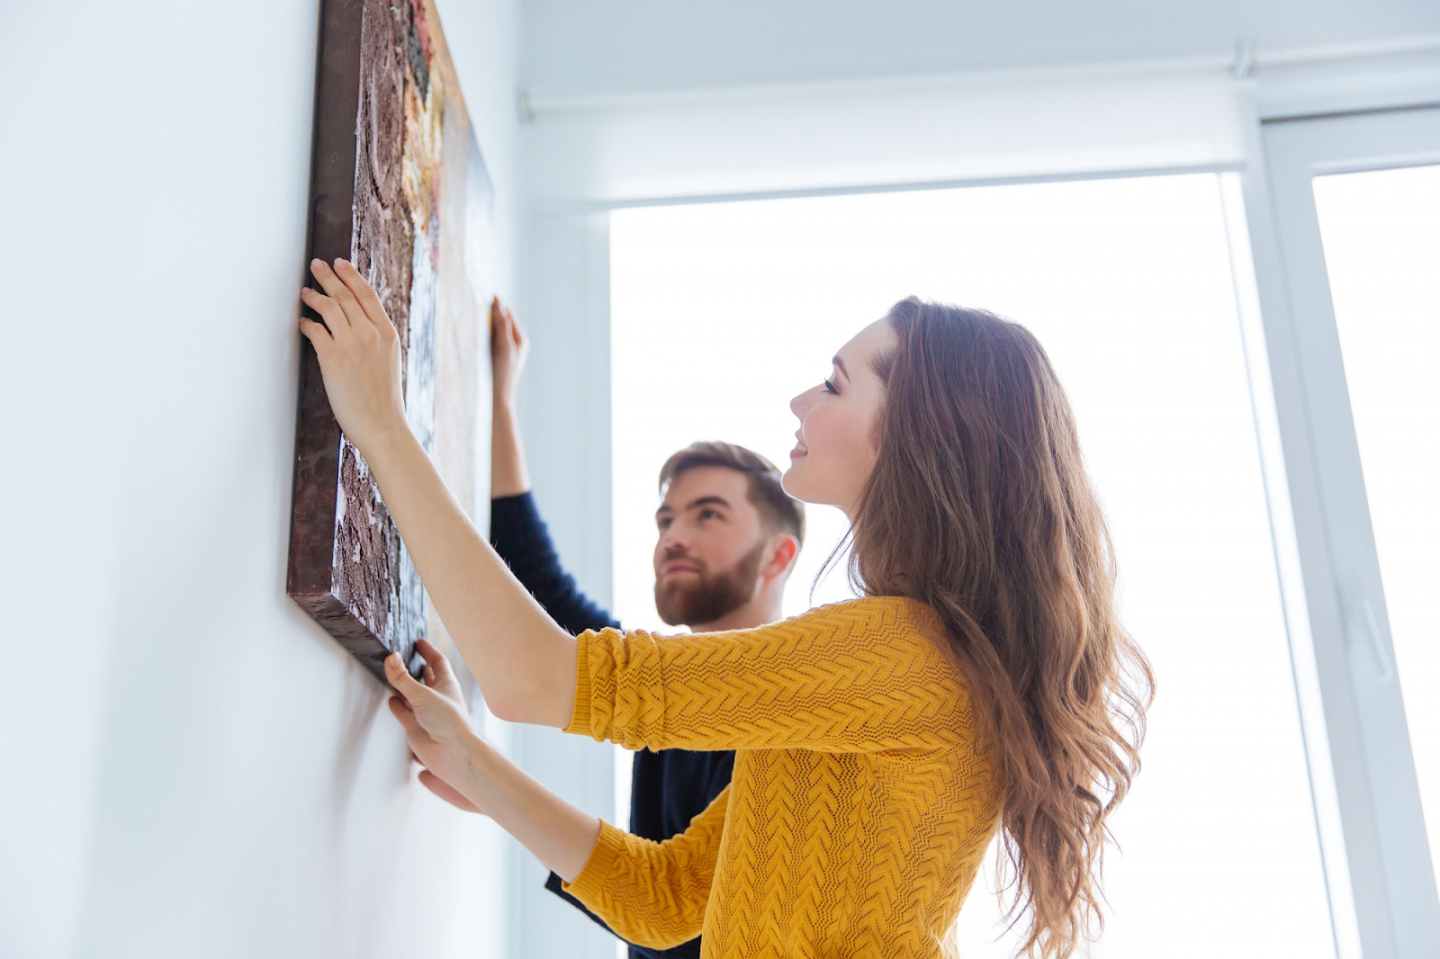 HOW TO DECORATE LIKE A PRO WITH PROFESSIONAL PRINTED PHOTOS